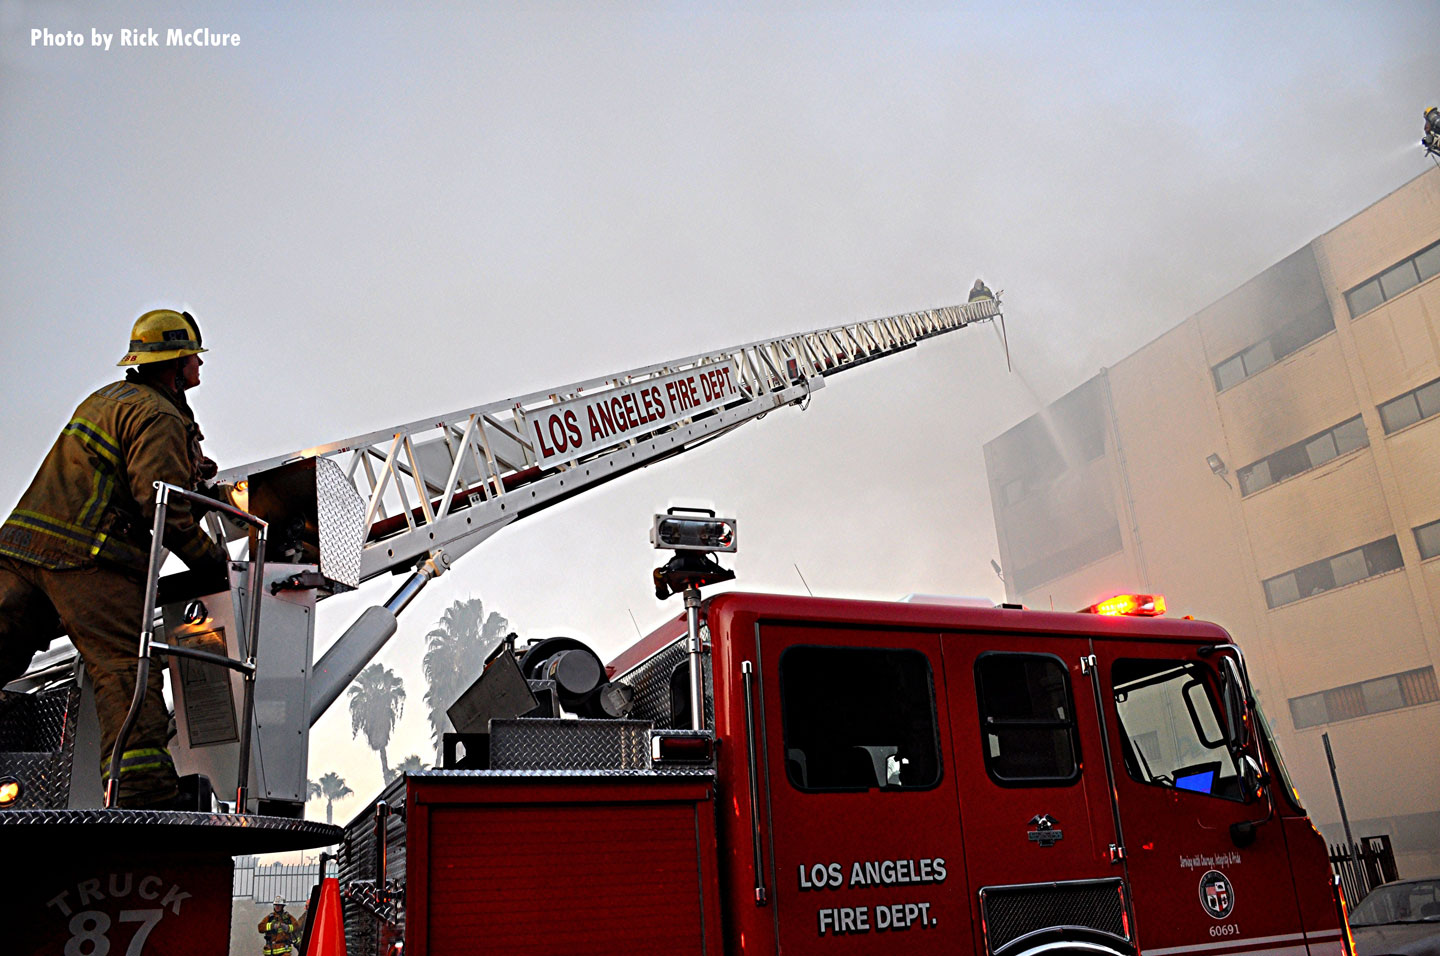 City of Los Angeles (CA) firefighters responded to this fire in a commercial structure.